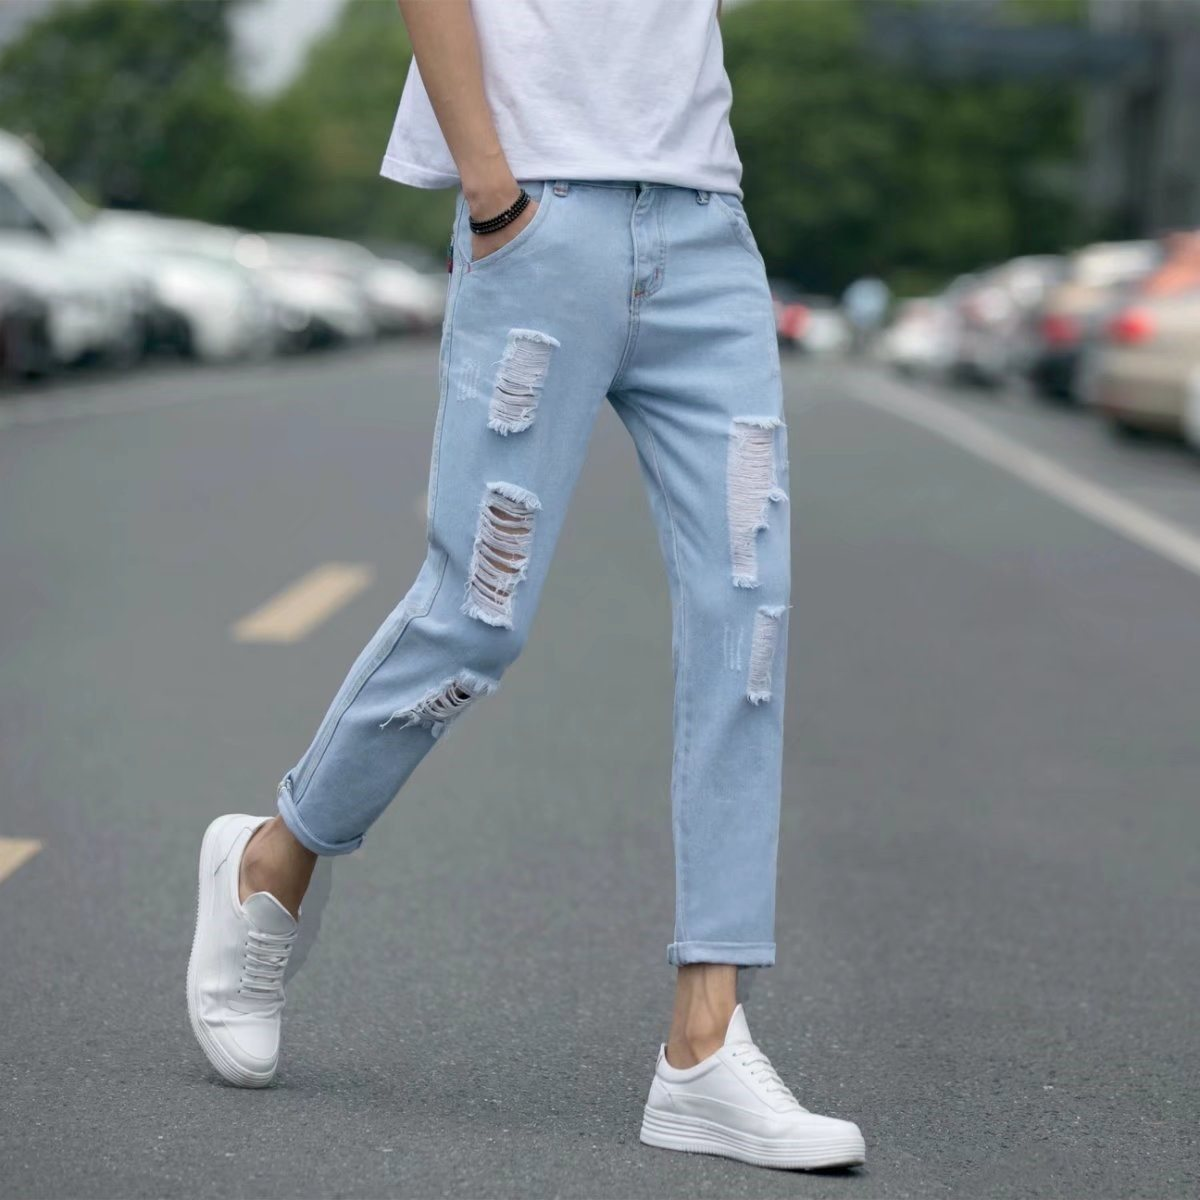 Skinny Light Color Hole Youth Men's Spring And Summer Jeans Ankle Banded Pants Students Hip-hugger Men's Light Blue Small Trous